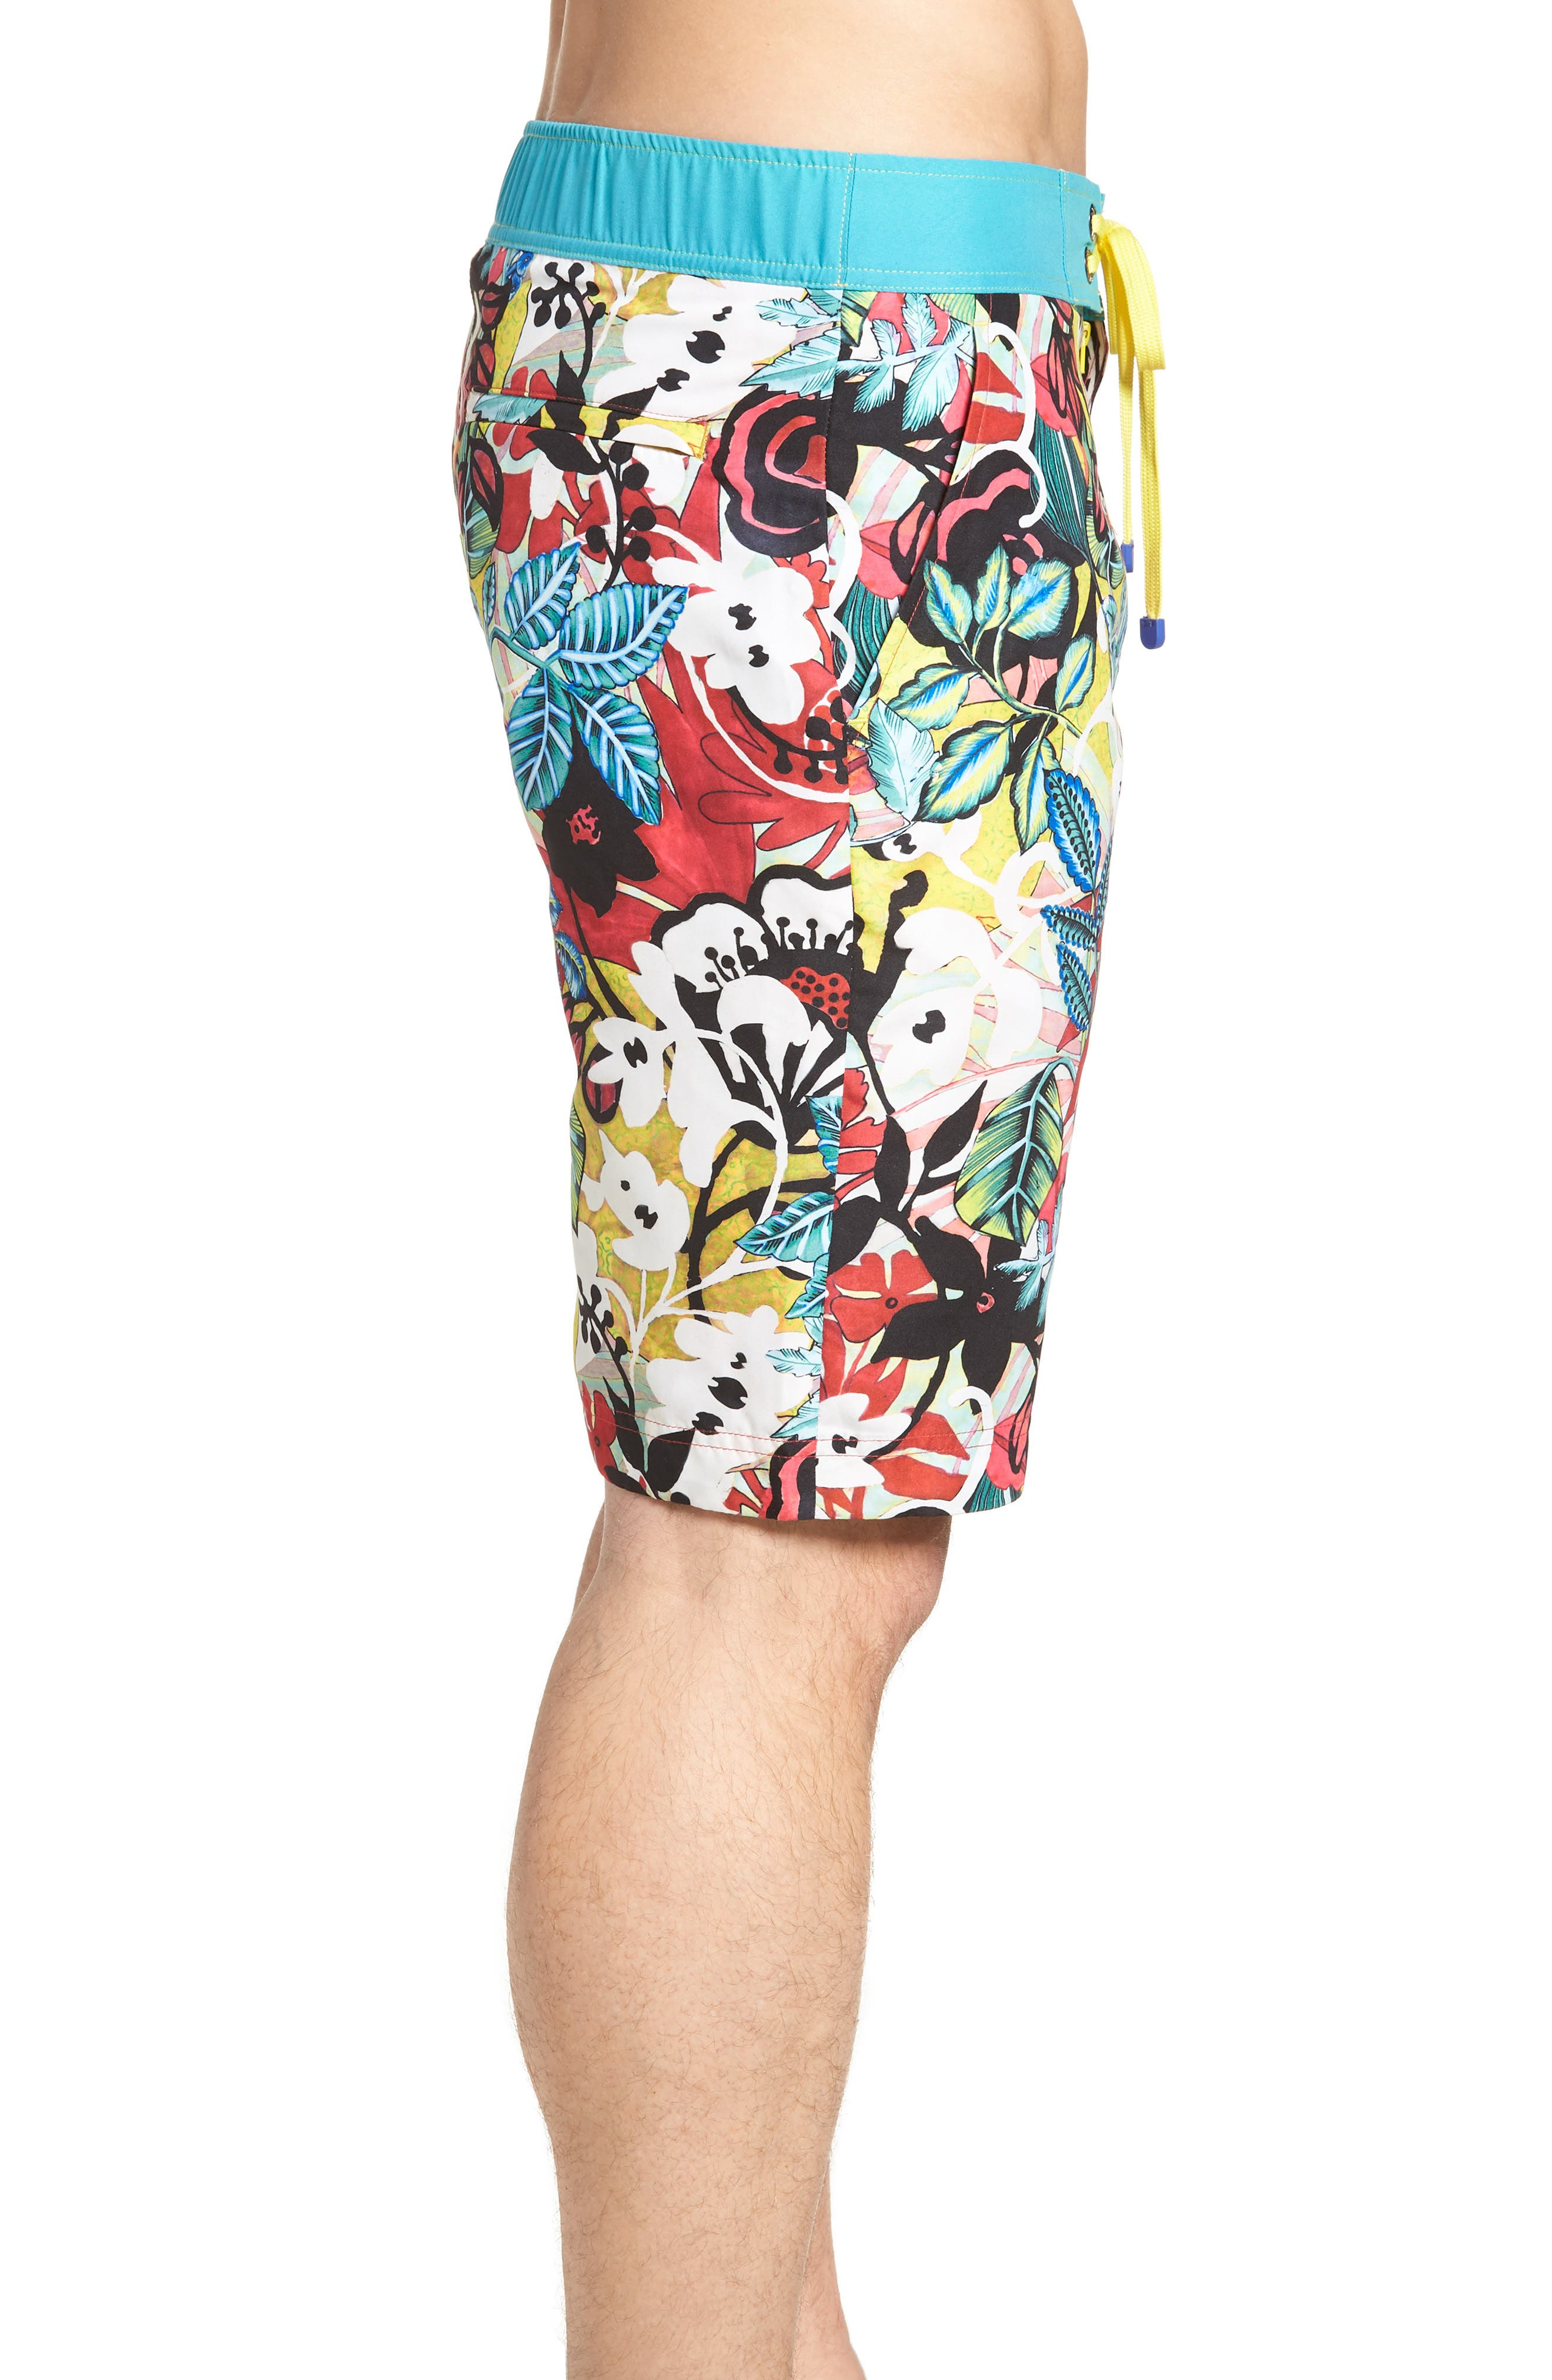 Barbarito Classic Fit Board Shorts,                             Alternate thumbnail 3, color,                             MULTI